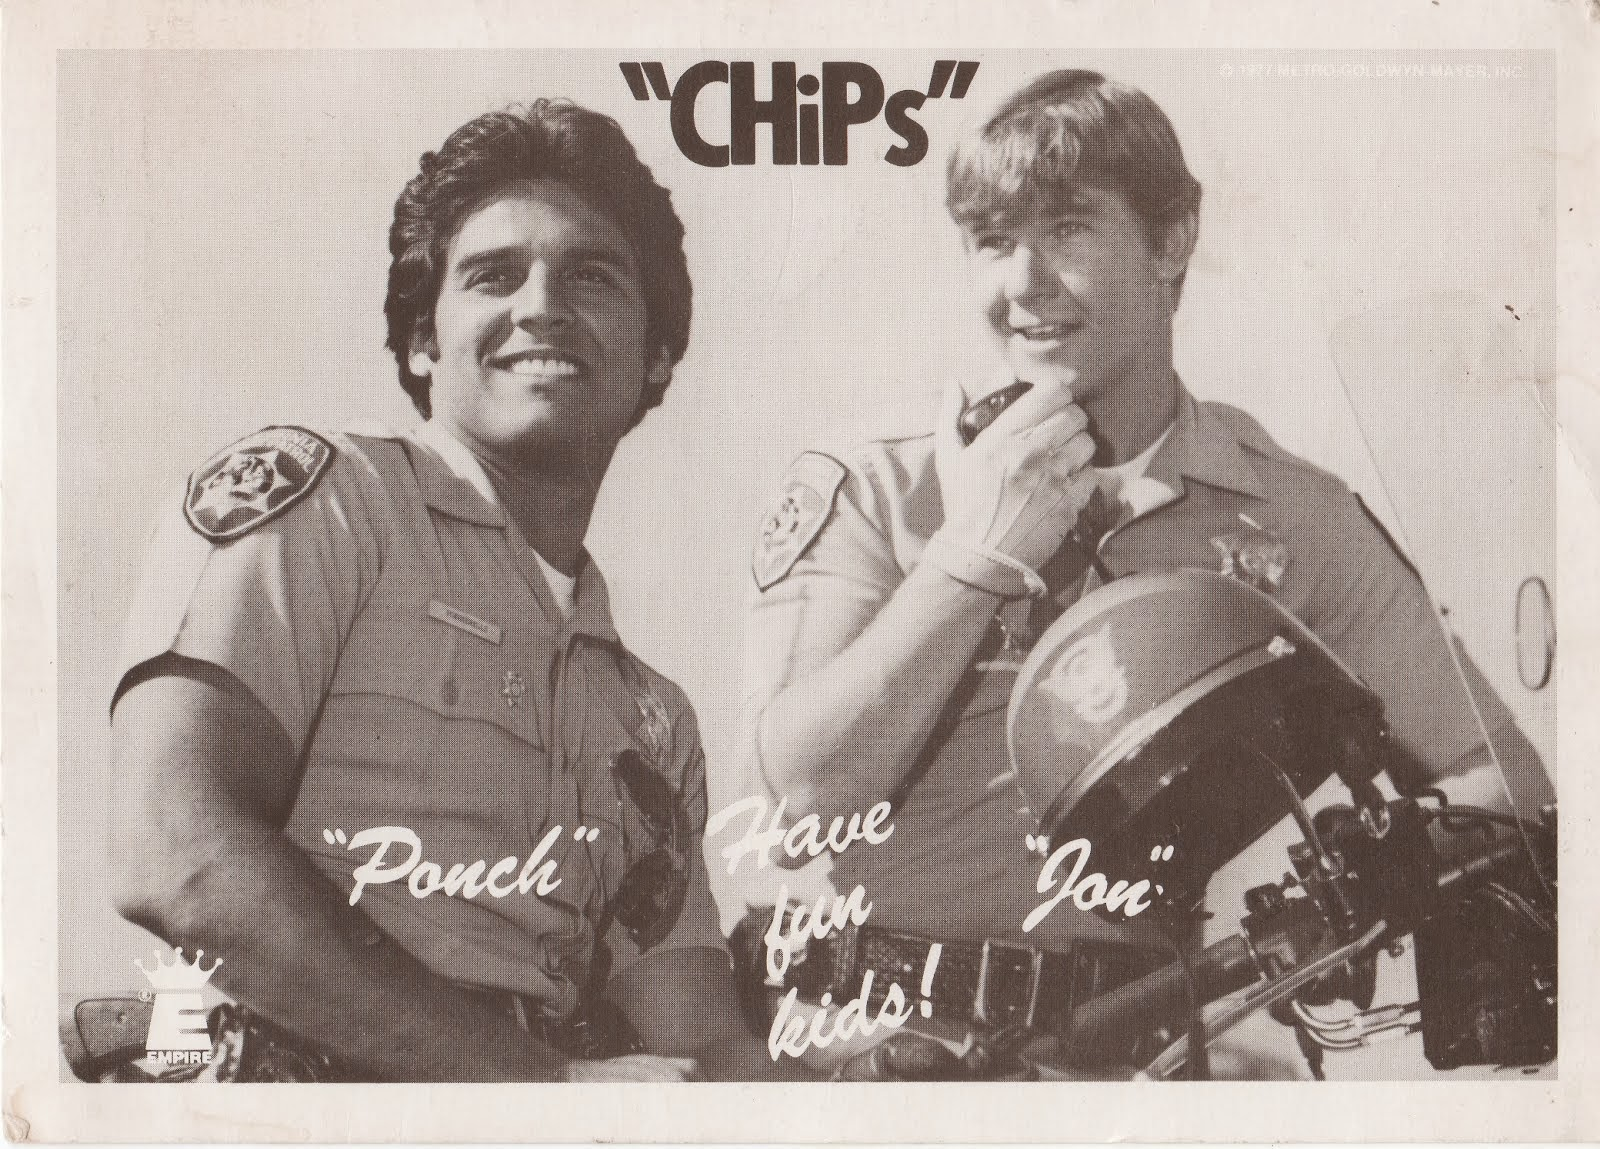 Thomas Q Kimball Fan Of Chips Ponch and Jon with Erik Estrada and Larry Wilcox